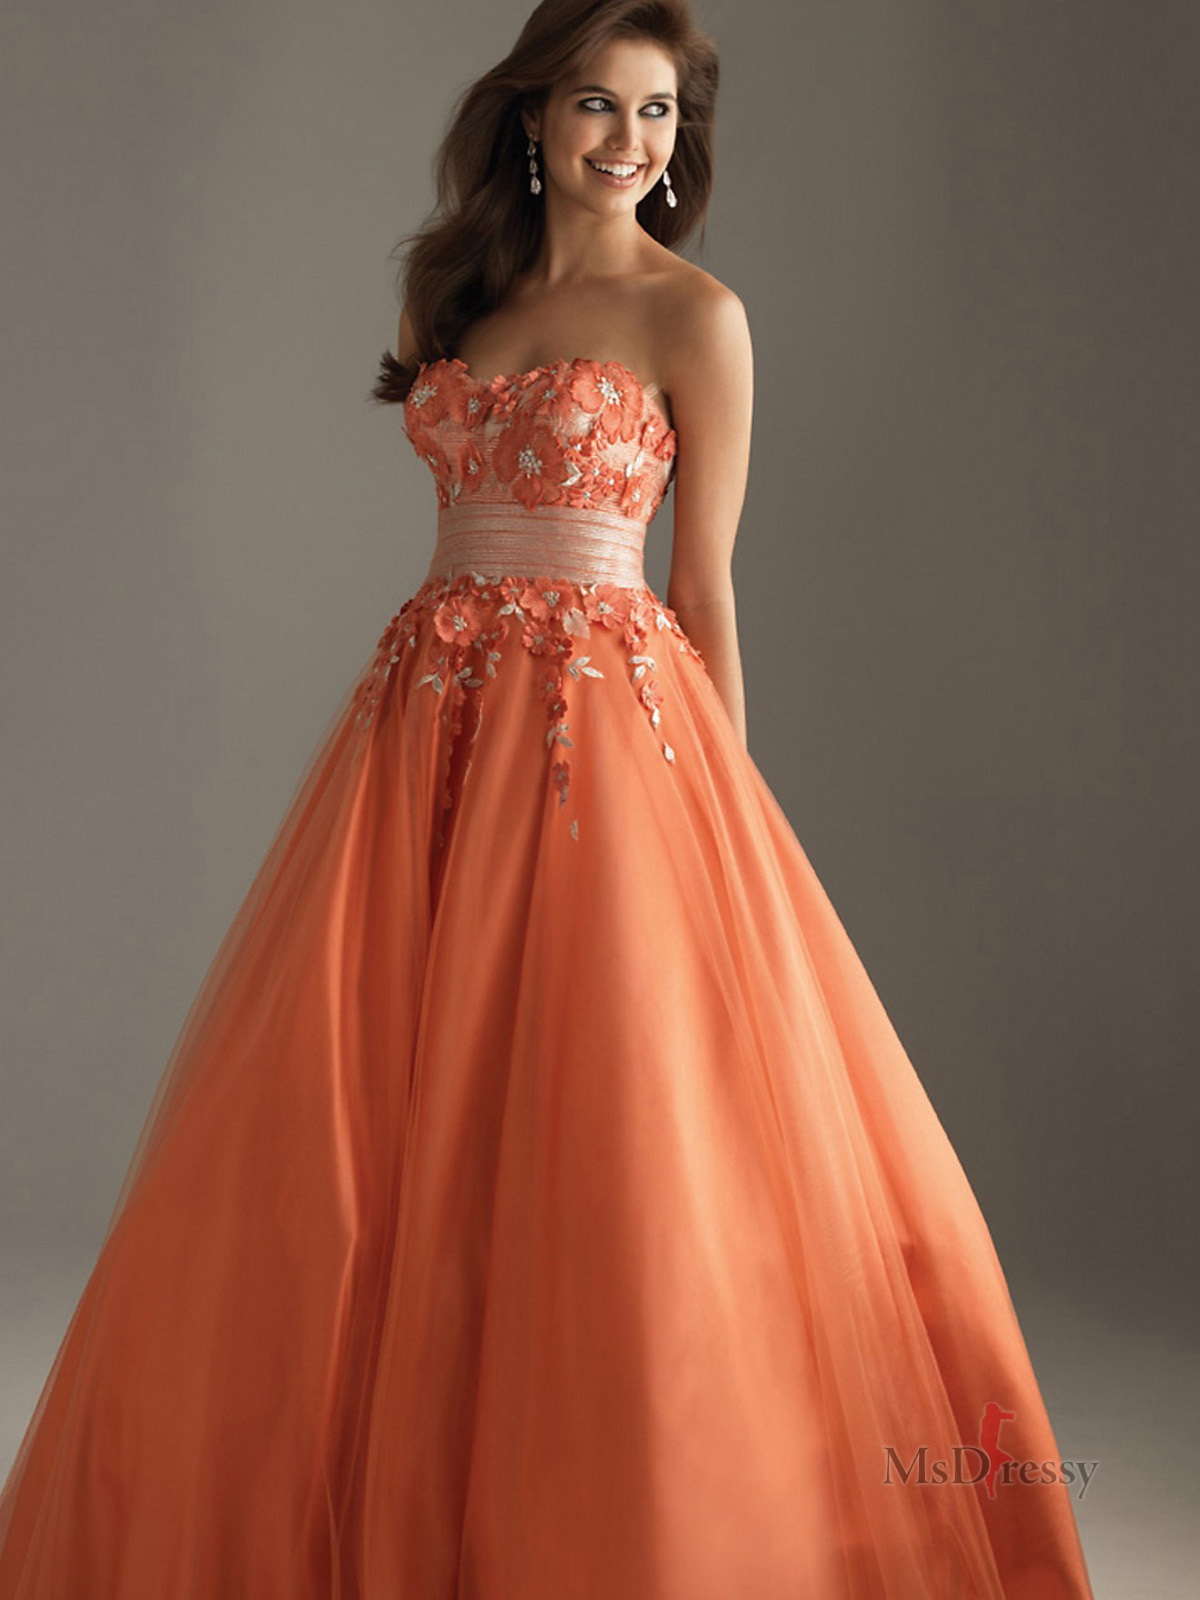 prom dress orange prom dresses orange dresses for prom